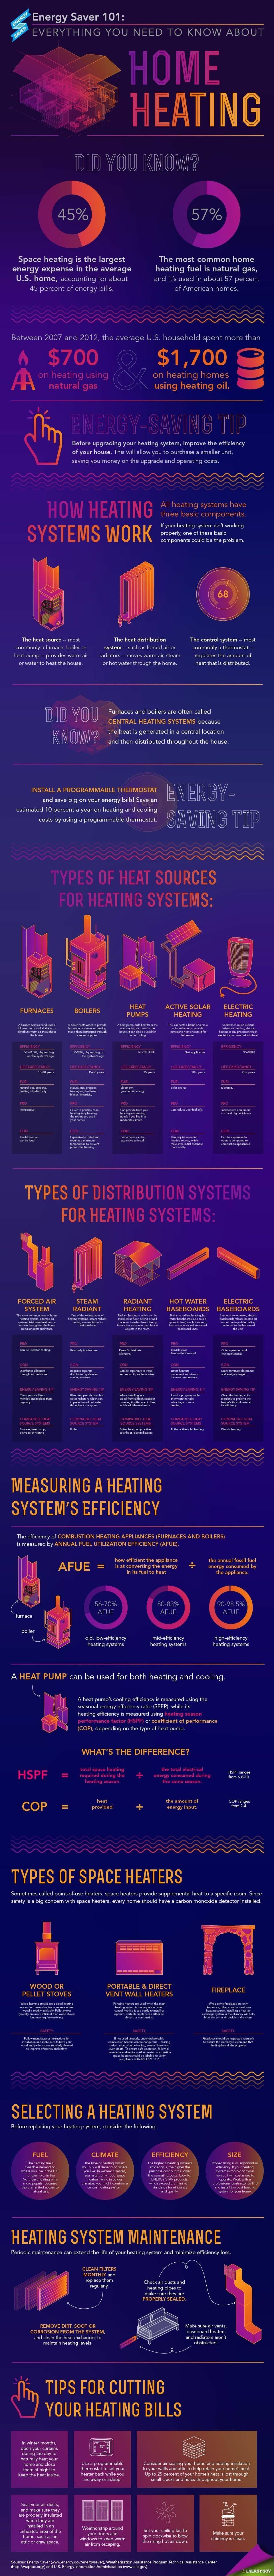 Everything you need to know about home heating, ventilation during cooler weather